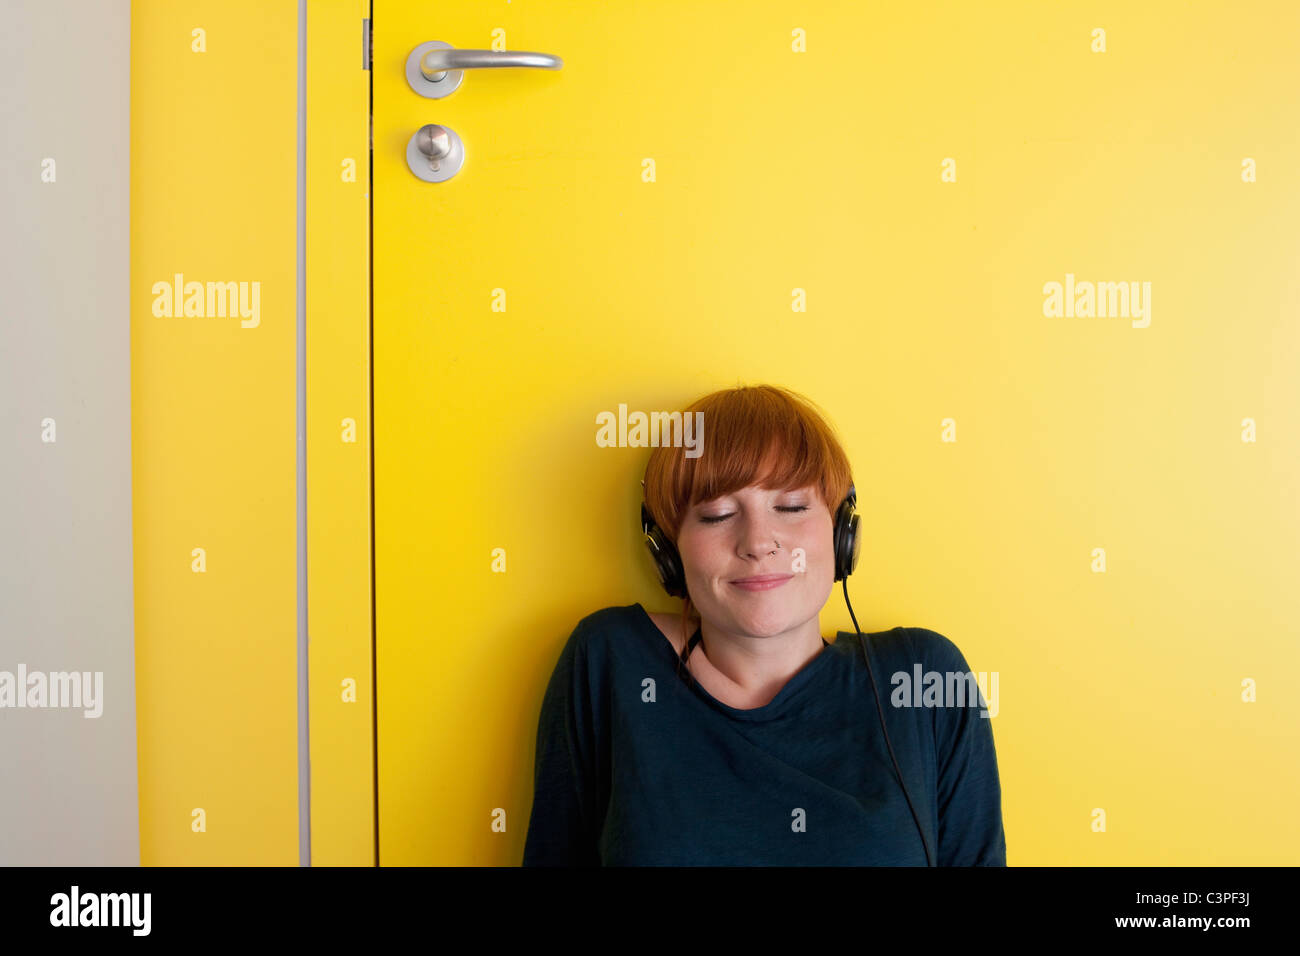 Germany, Leipzig, Young woman sitting and listening music in locker room - Stock Image